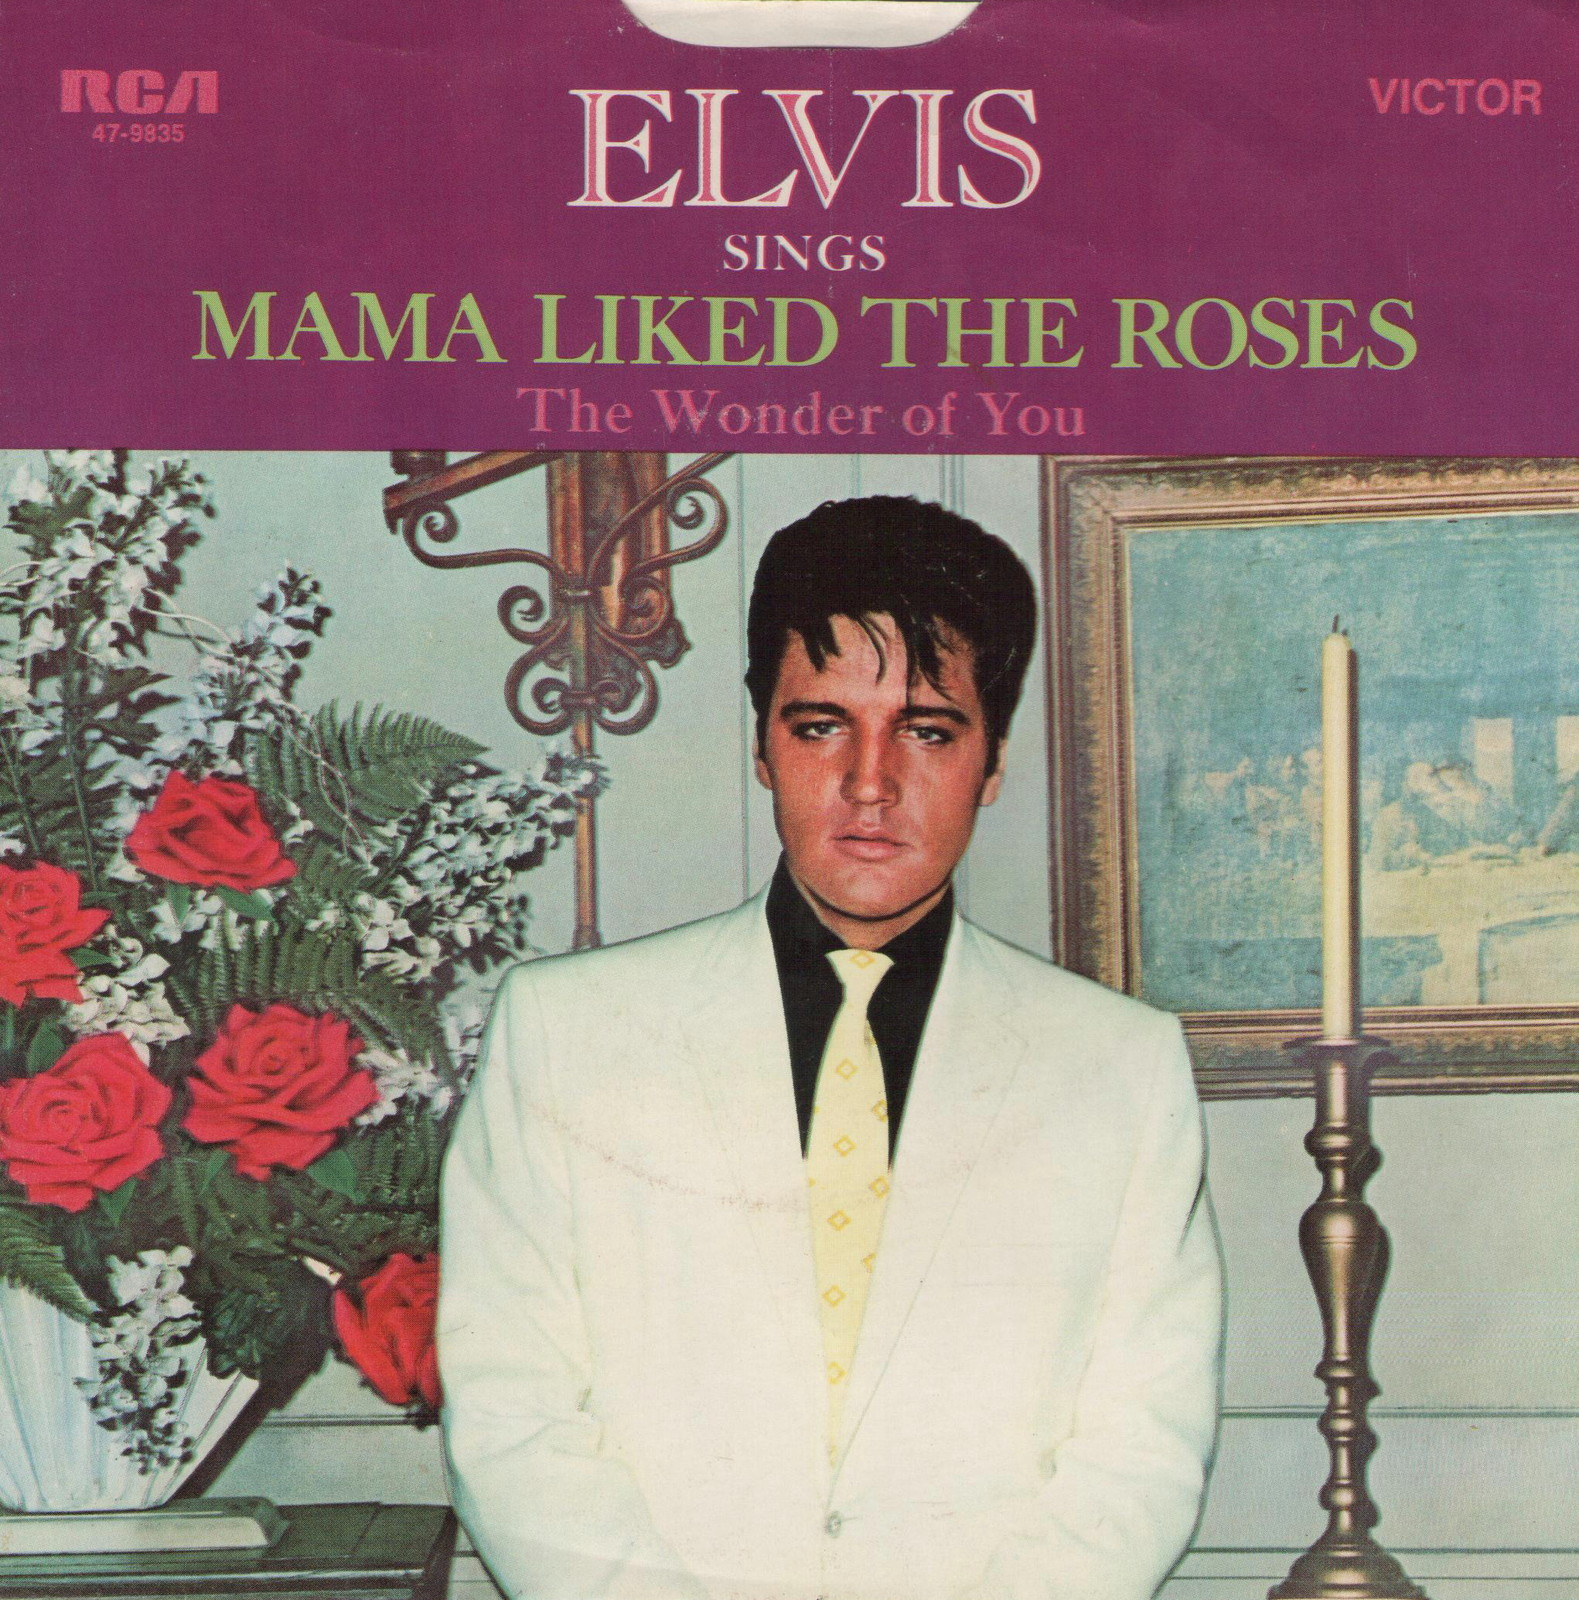 The Wonder Of You / Mama Liked The Roses 47-9835bwrp5o